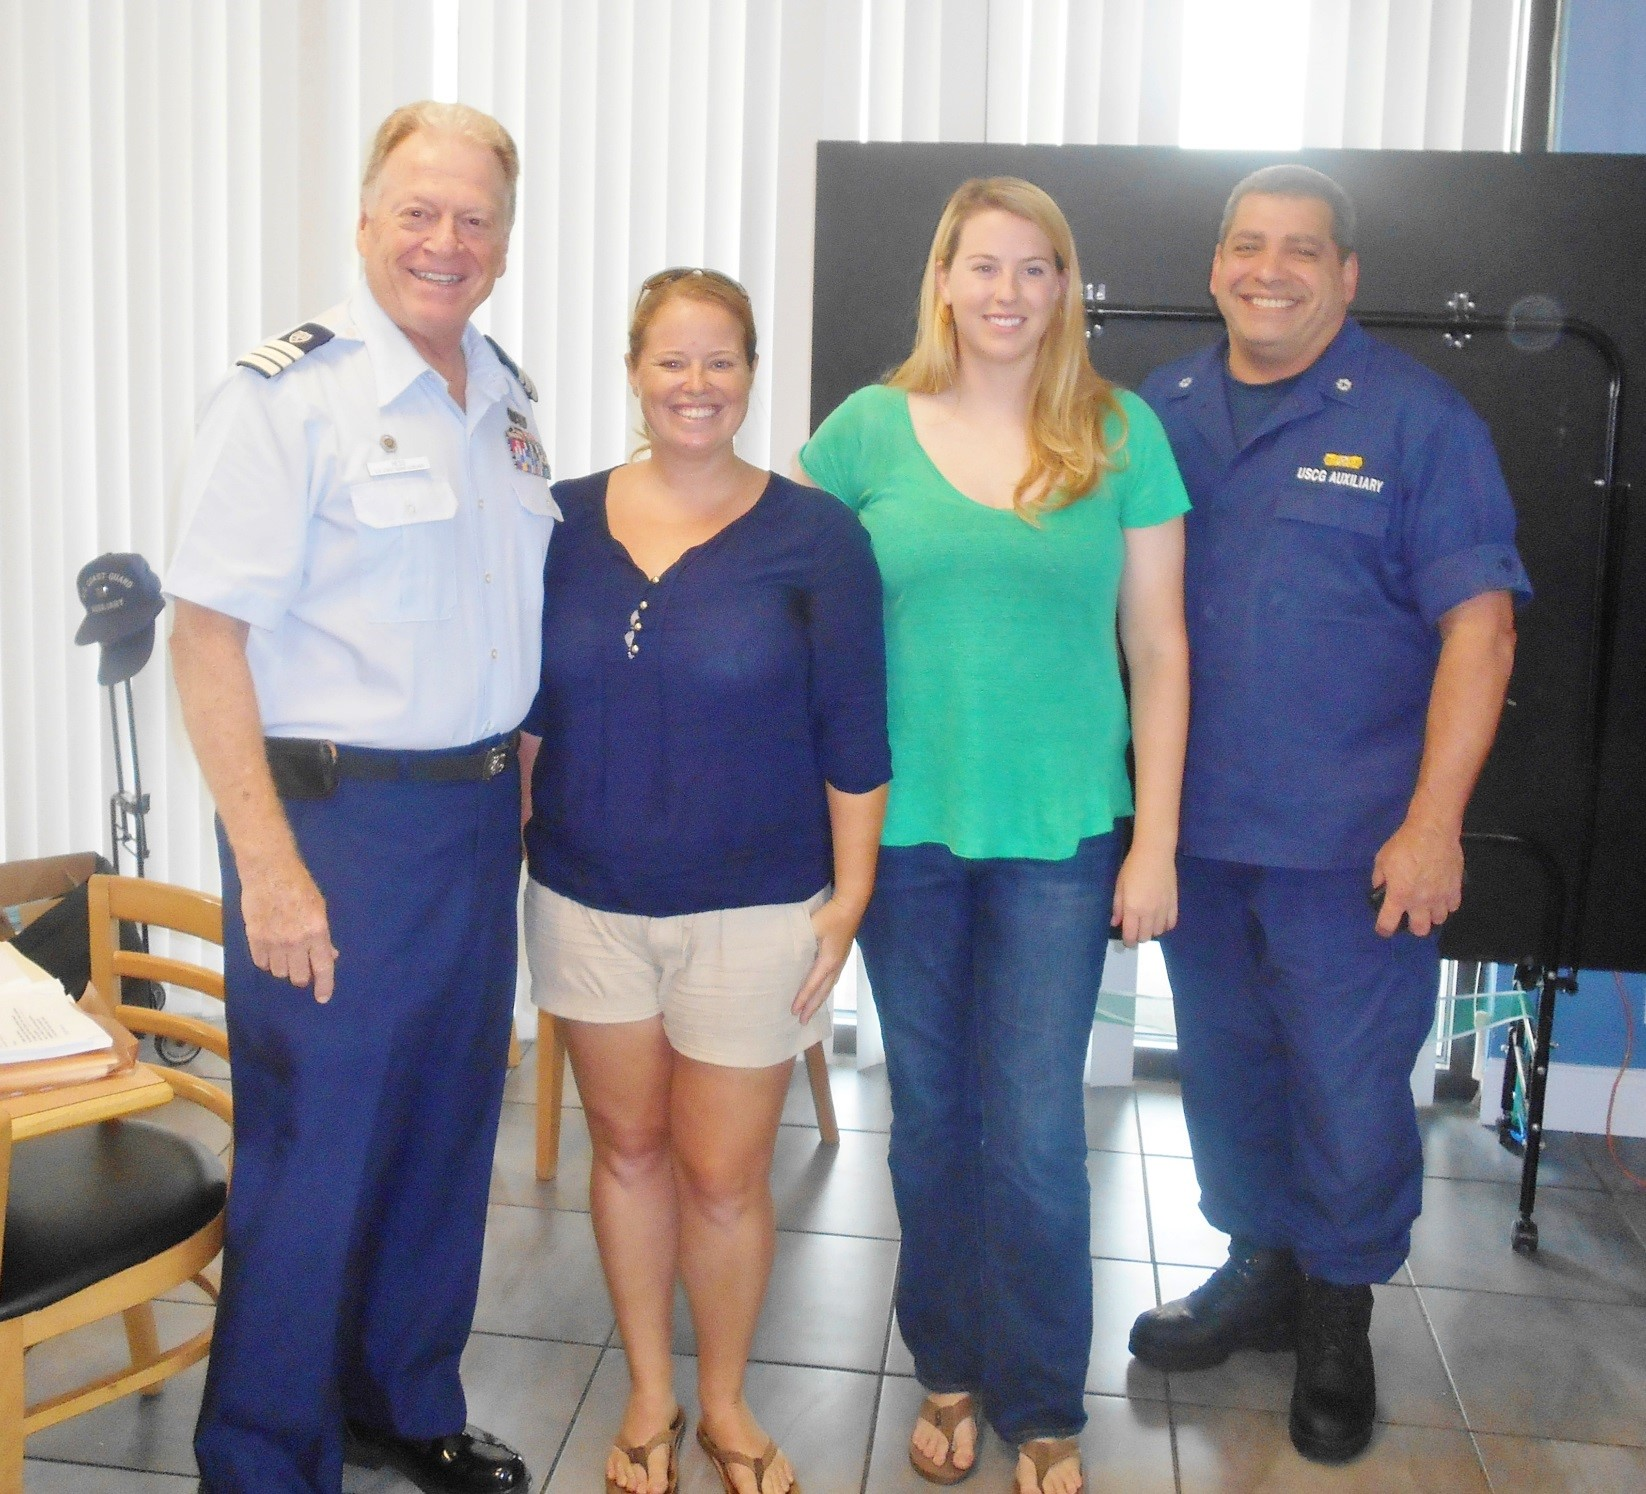 From left: United States Coast Guard Auxiliary member Dan Hess, Field & Administrative Assistant Kristina Trotta, Reef Injury Prevention and Response Coordinator Mollie Sinnott and United States Coast Guard Auxiliary member William Tejerio.